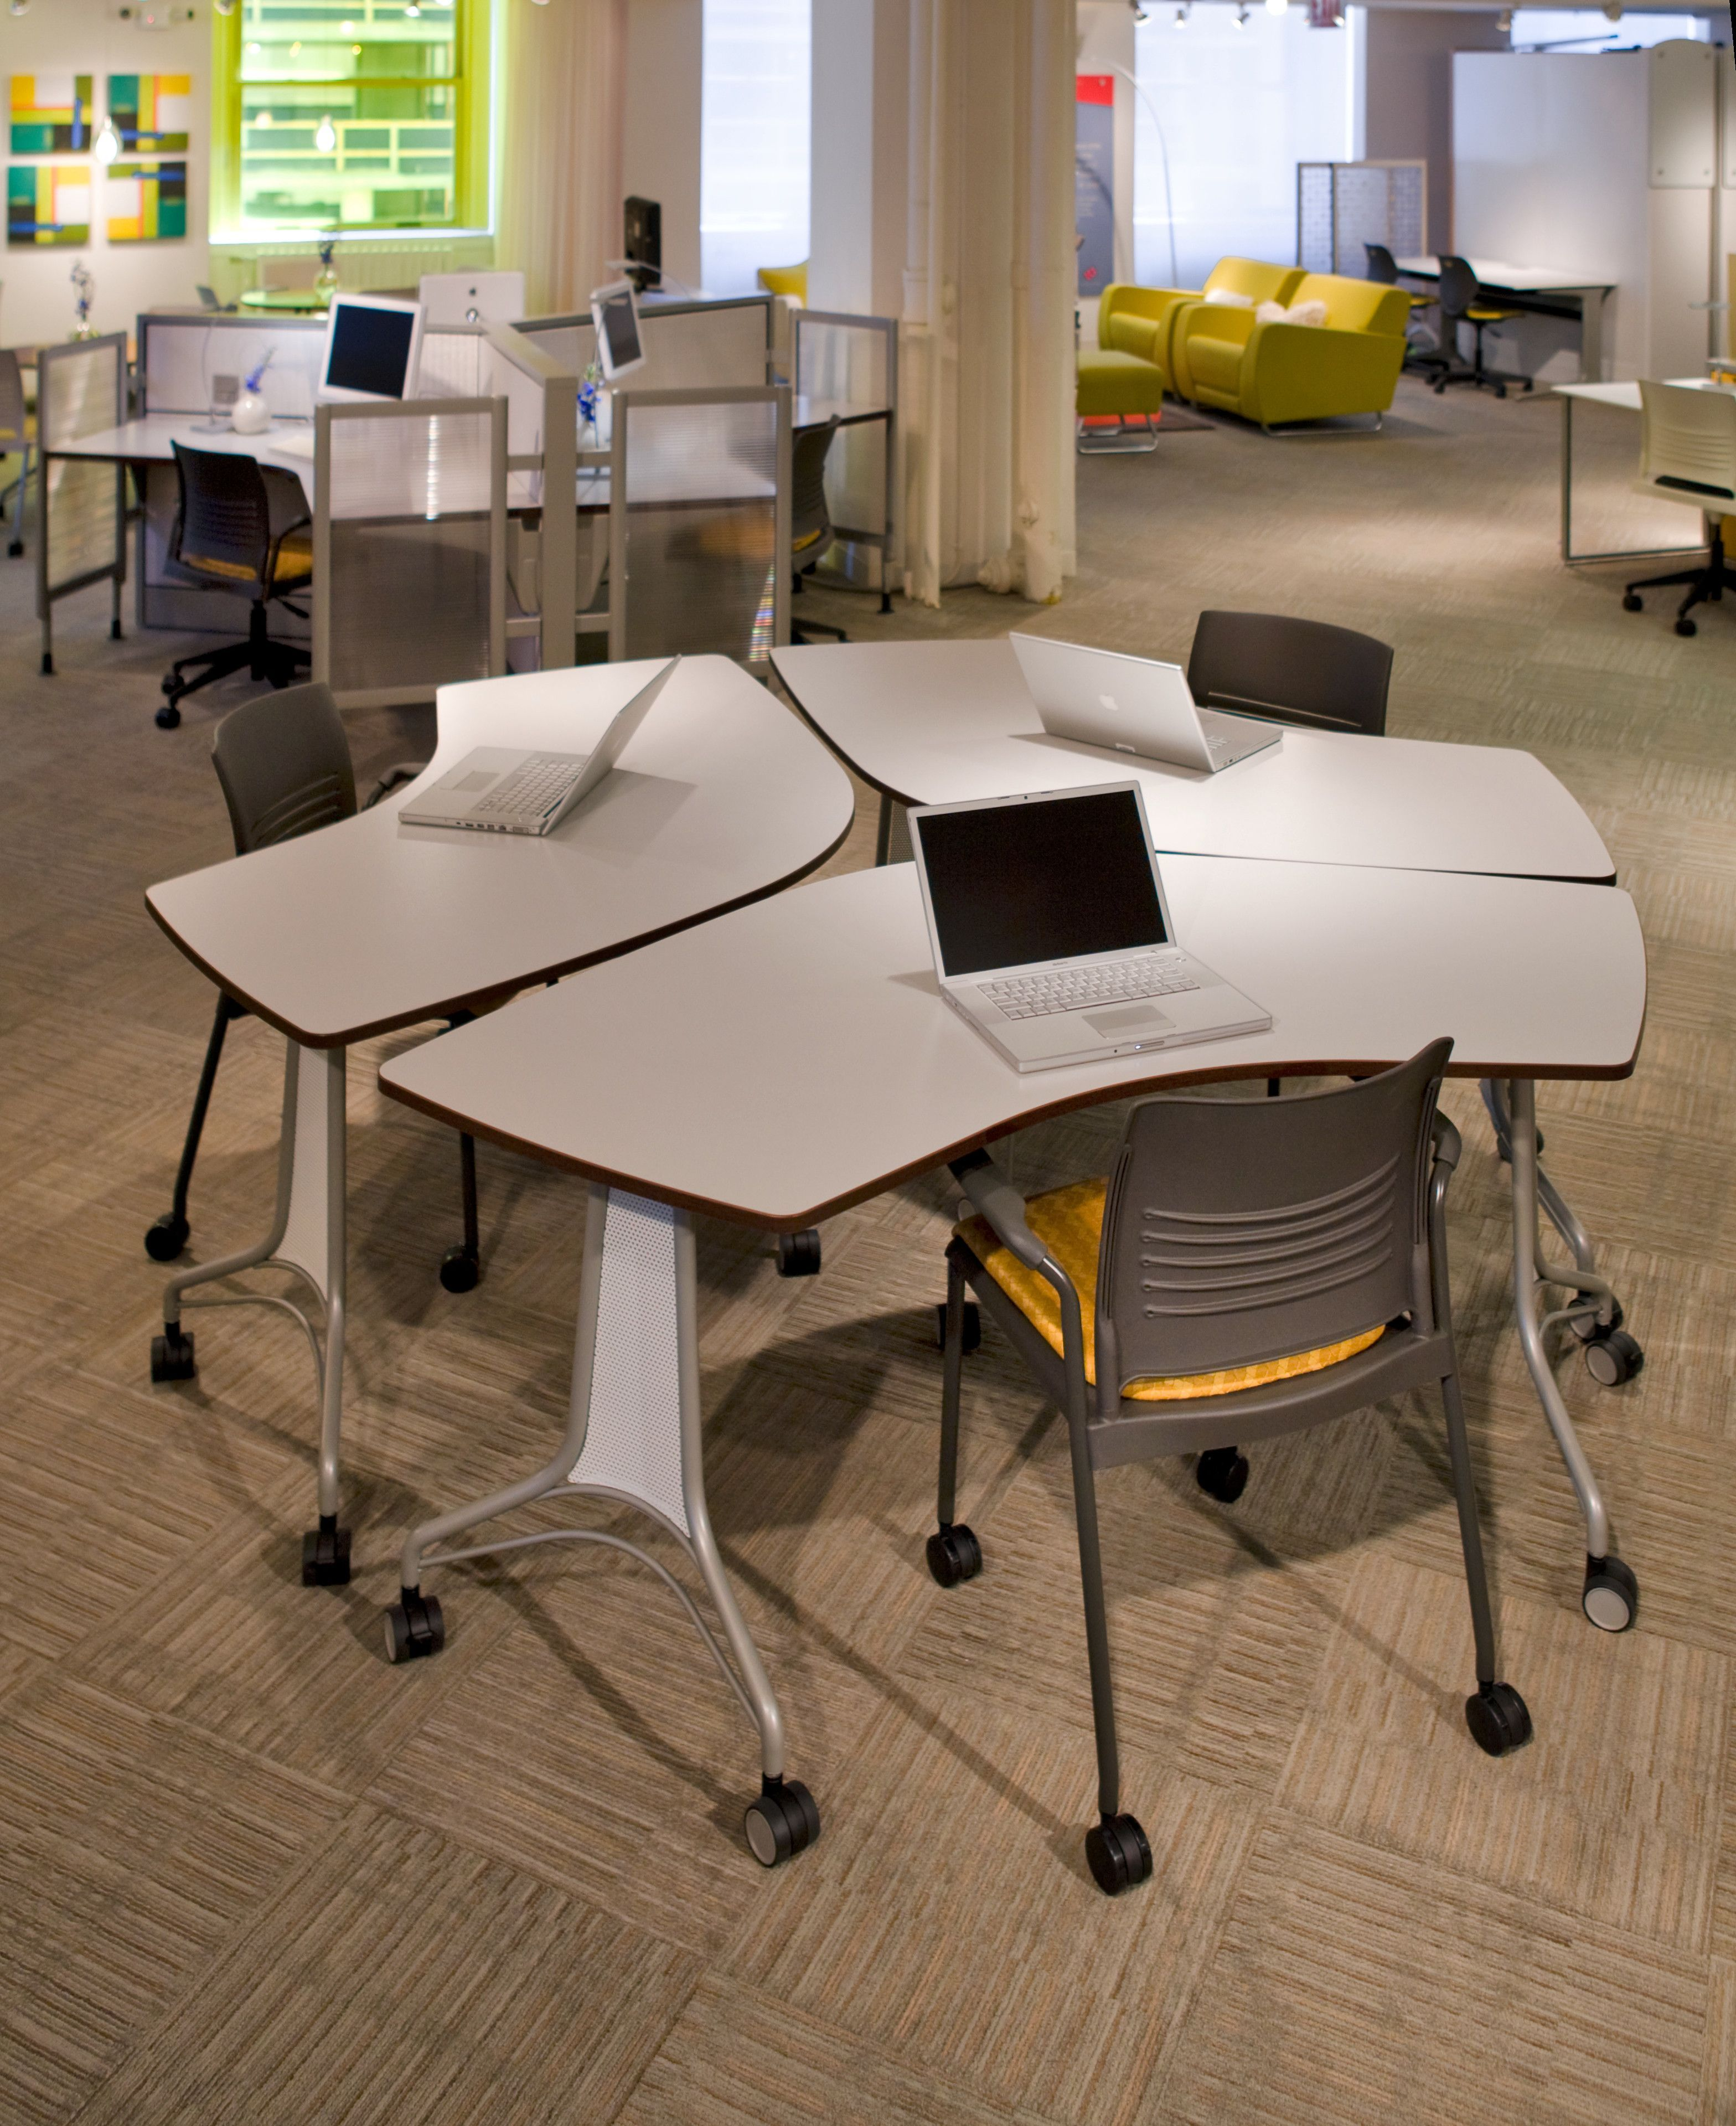 Classroom Design With Tables ~ Enlite tables and strive chairs make reconfiguring